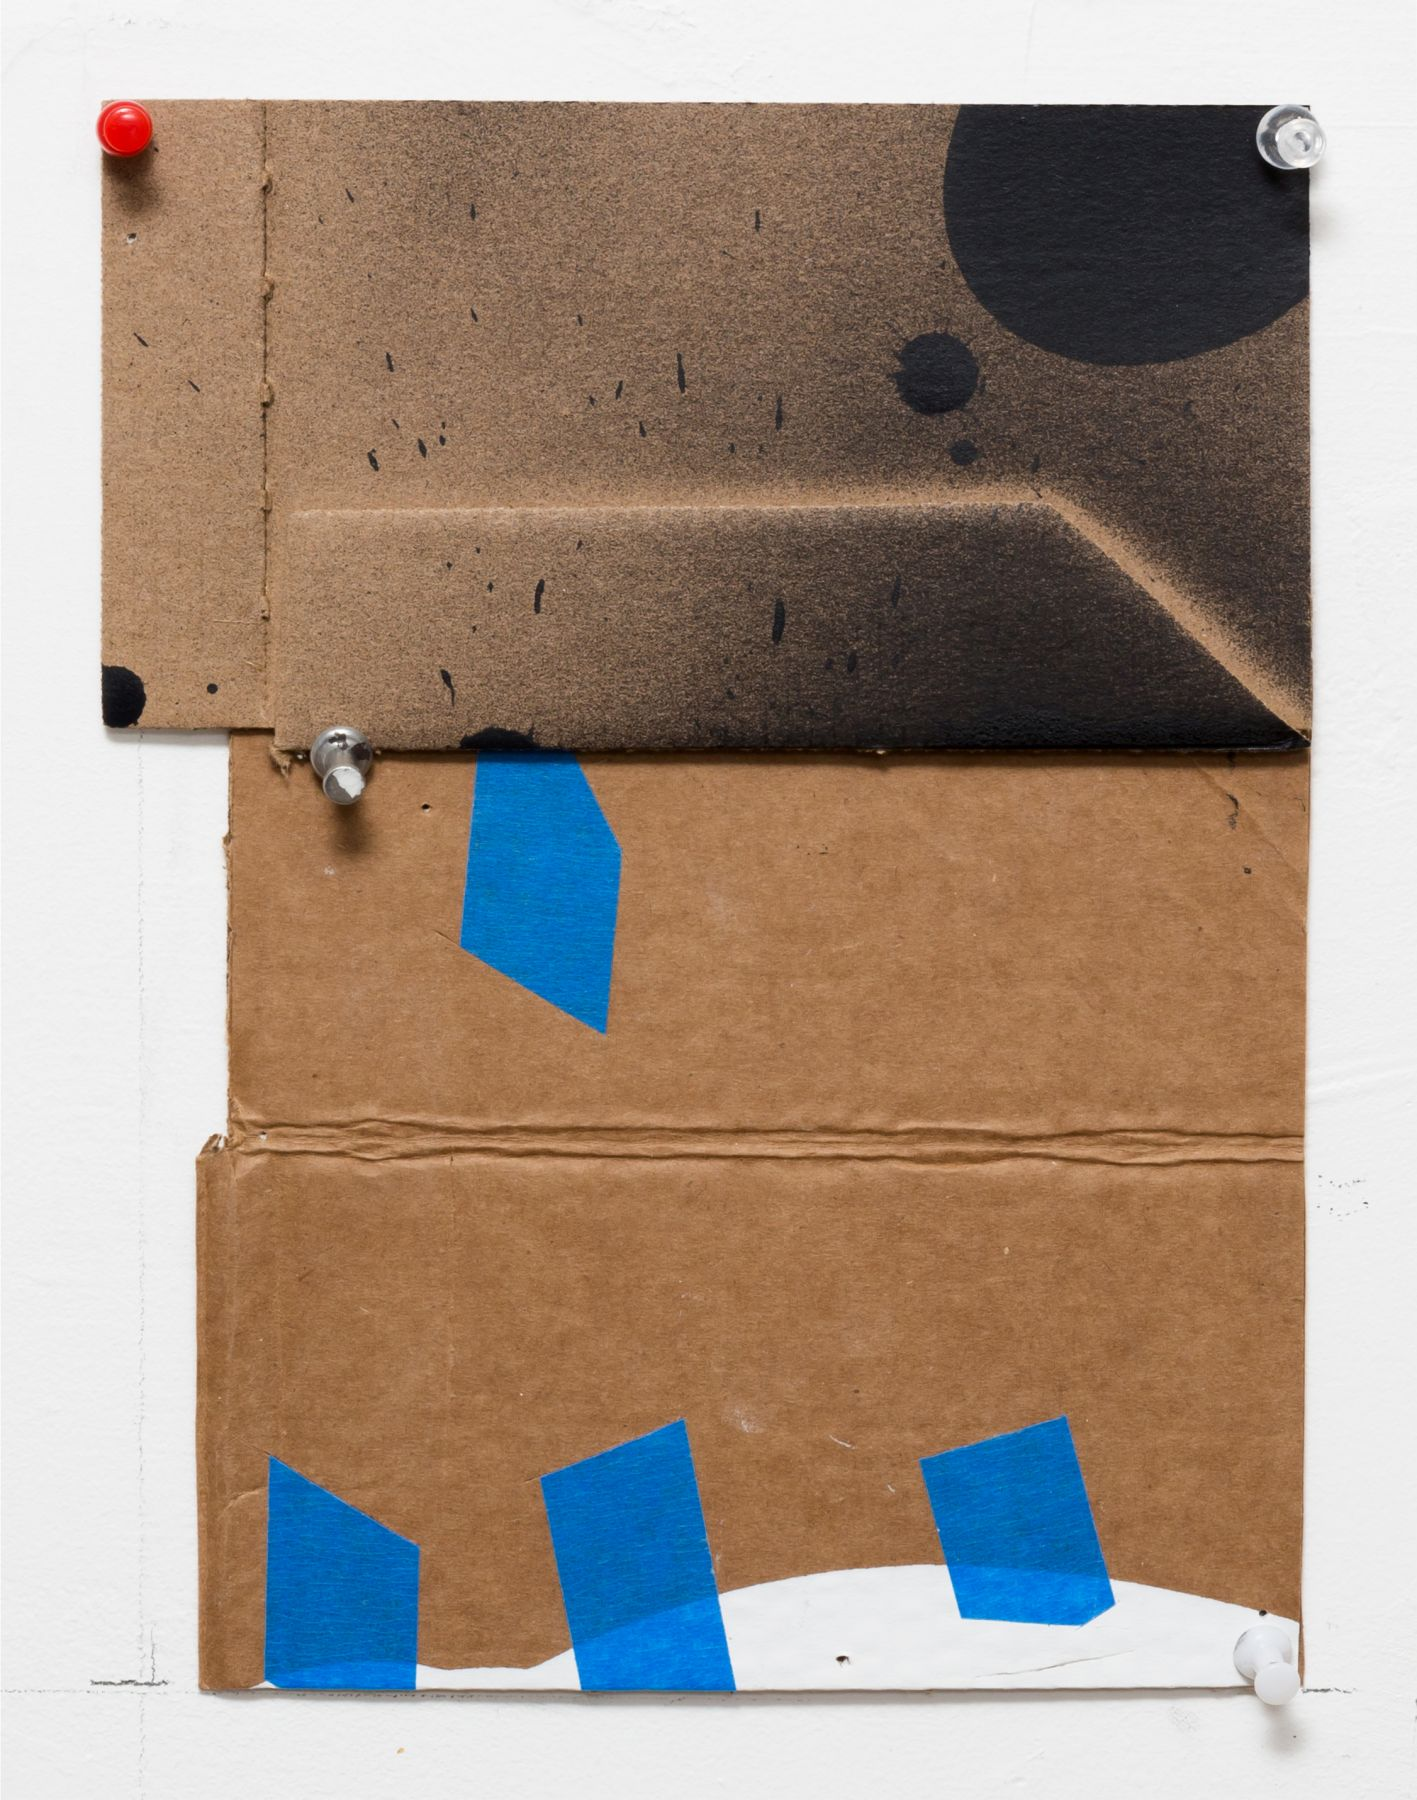 """George Negroponte's Lost (Tape, enamel, acrylic and spray paint on cardboard, 9 3/4"""" x 6 3/4"""") at Anita Rogers Gallery"""